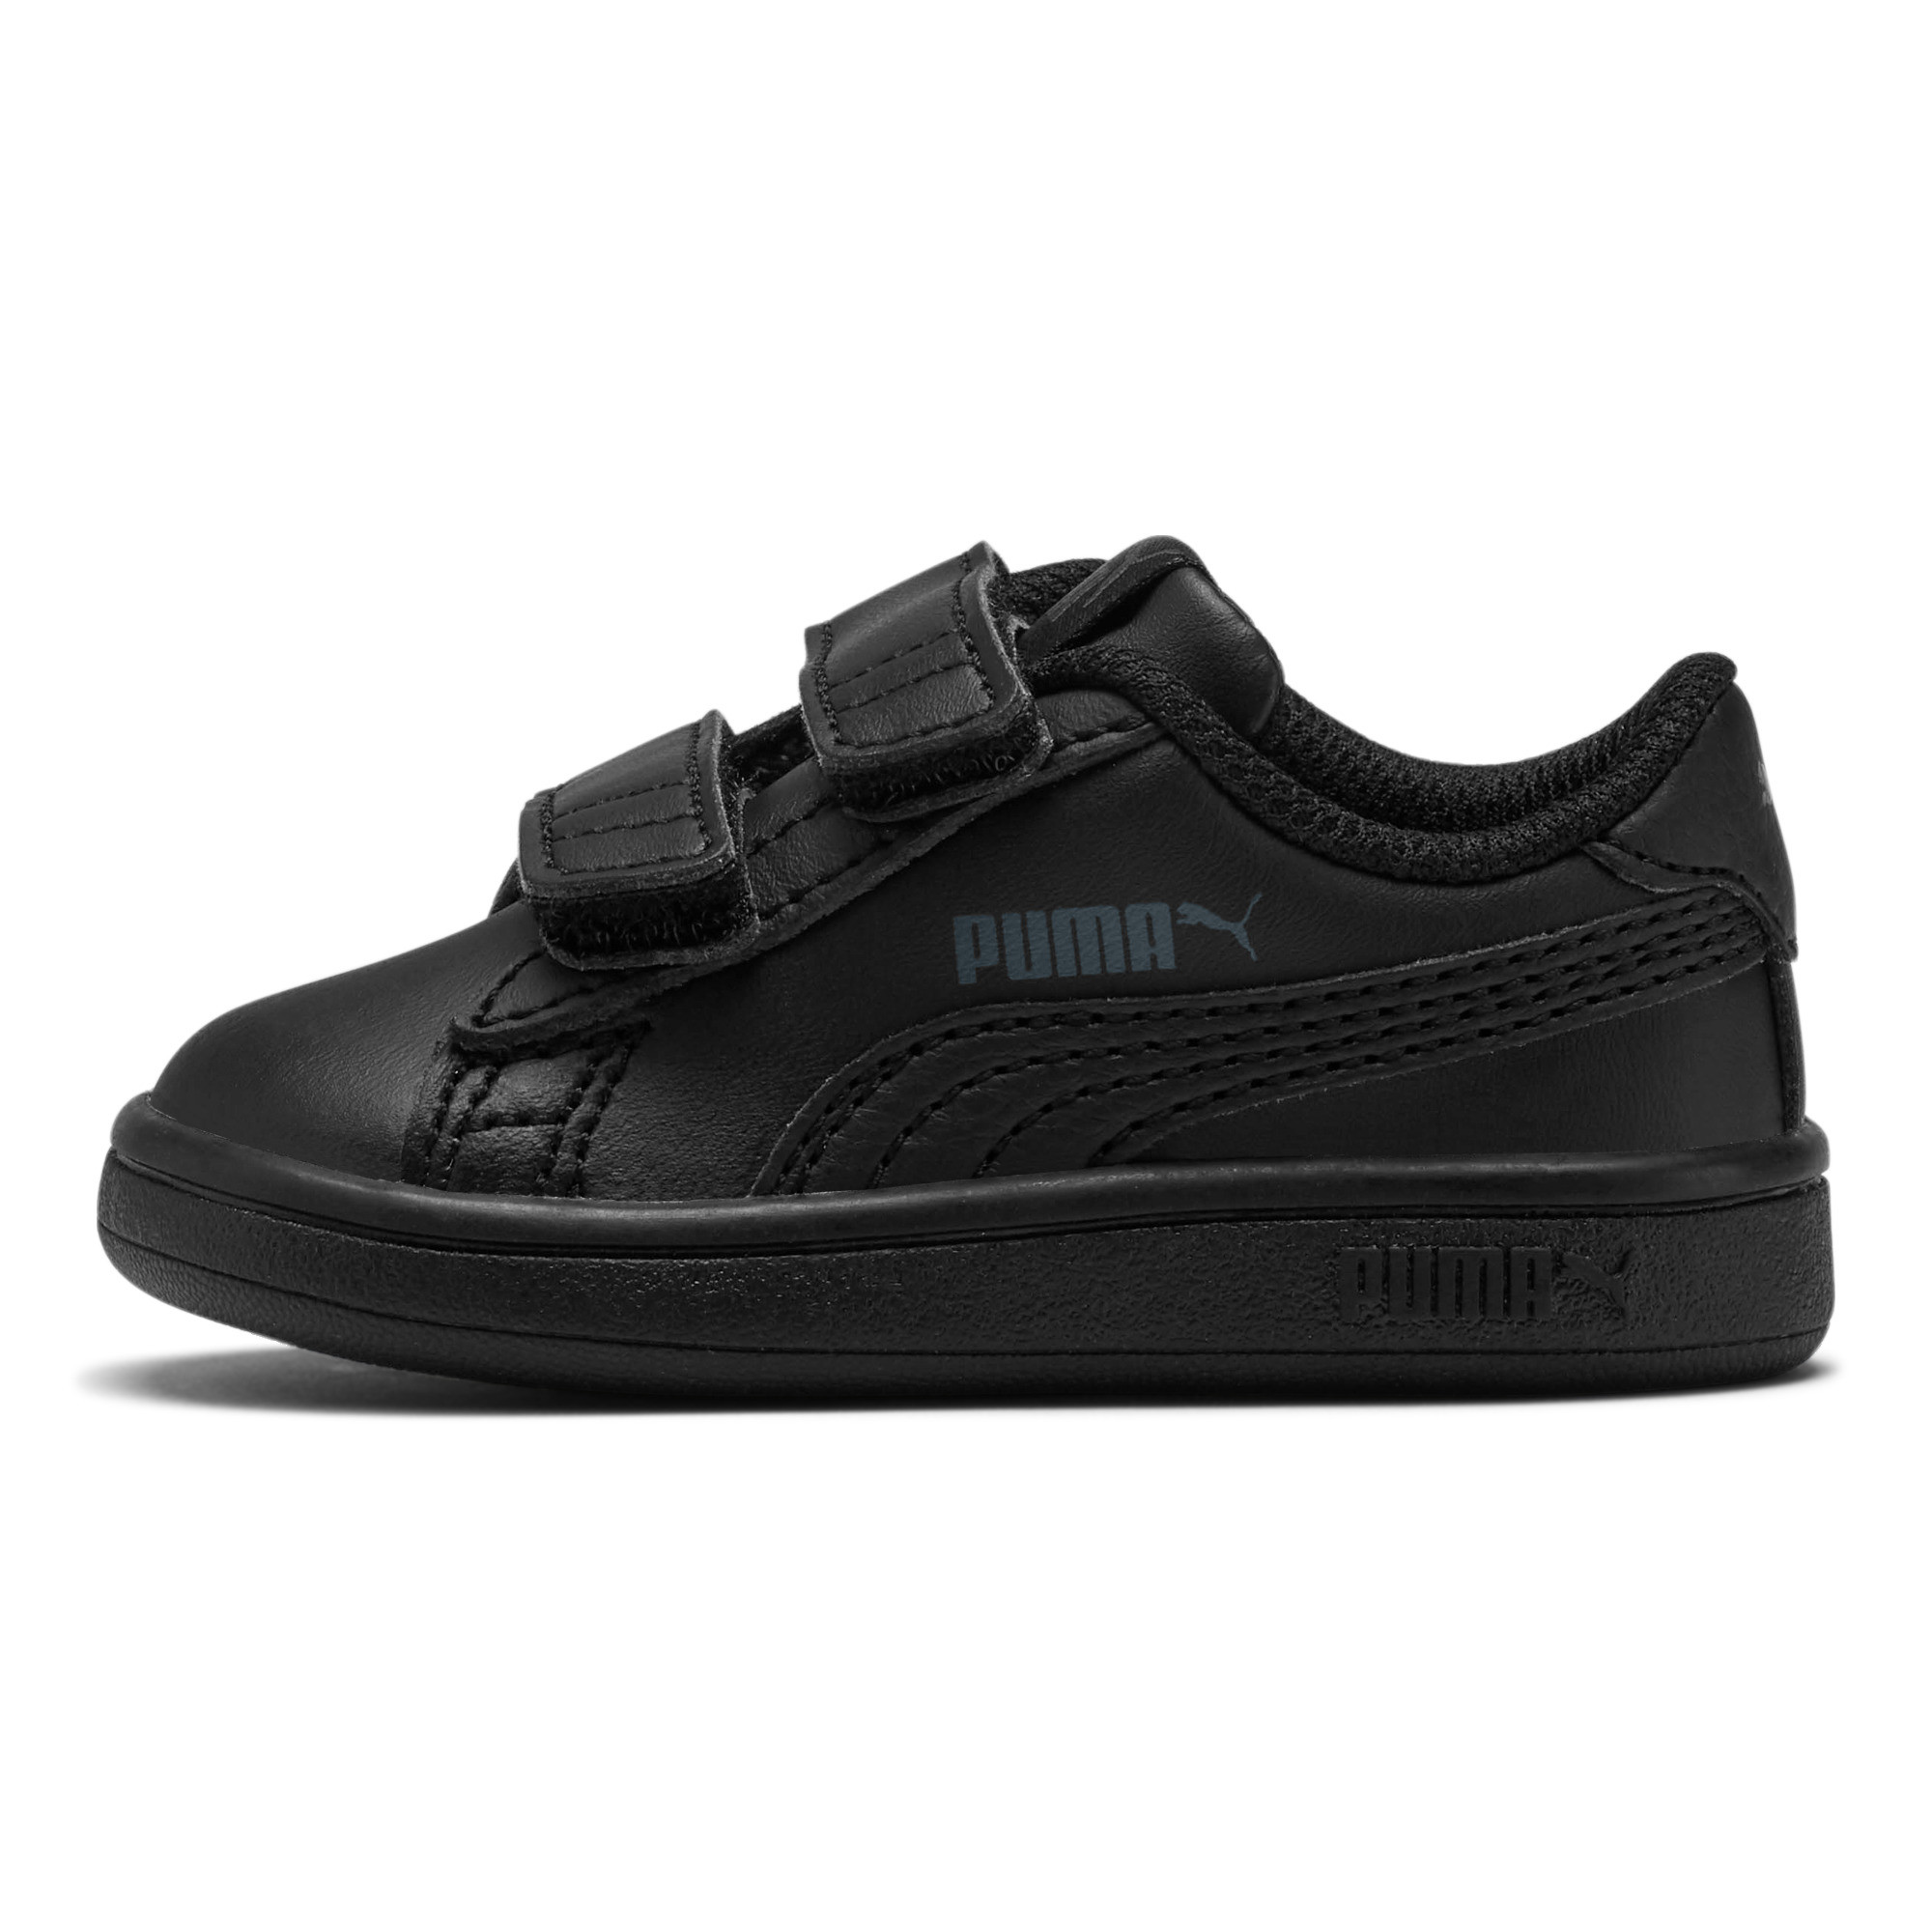 0897210cda Details about PUMA Puma Smash v2 L V Toddler Shoes Kids Shoe Kids